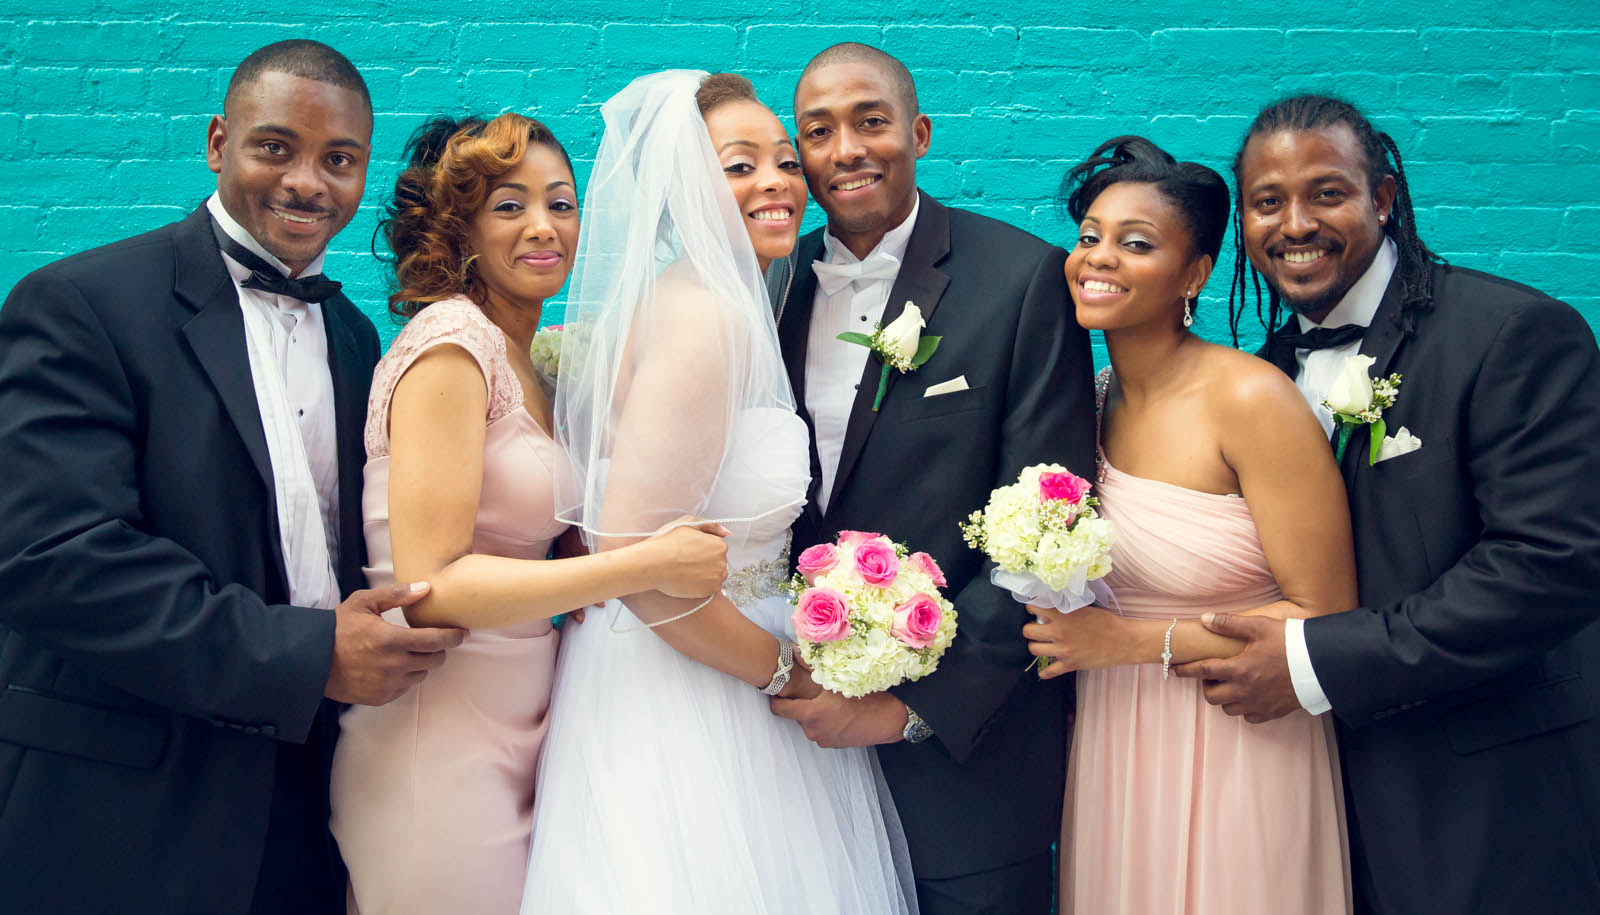 Malik_and_Shanika_Wedding_Ernestosue-9186-Edit.jpg